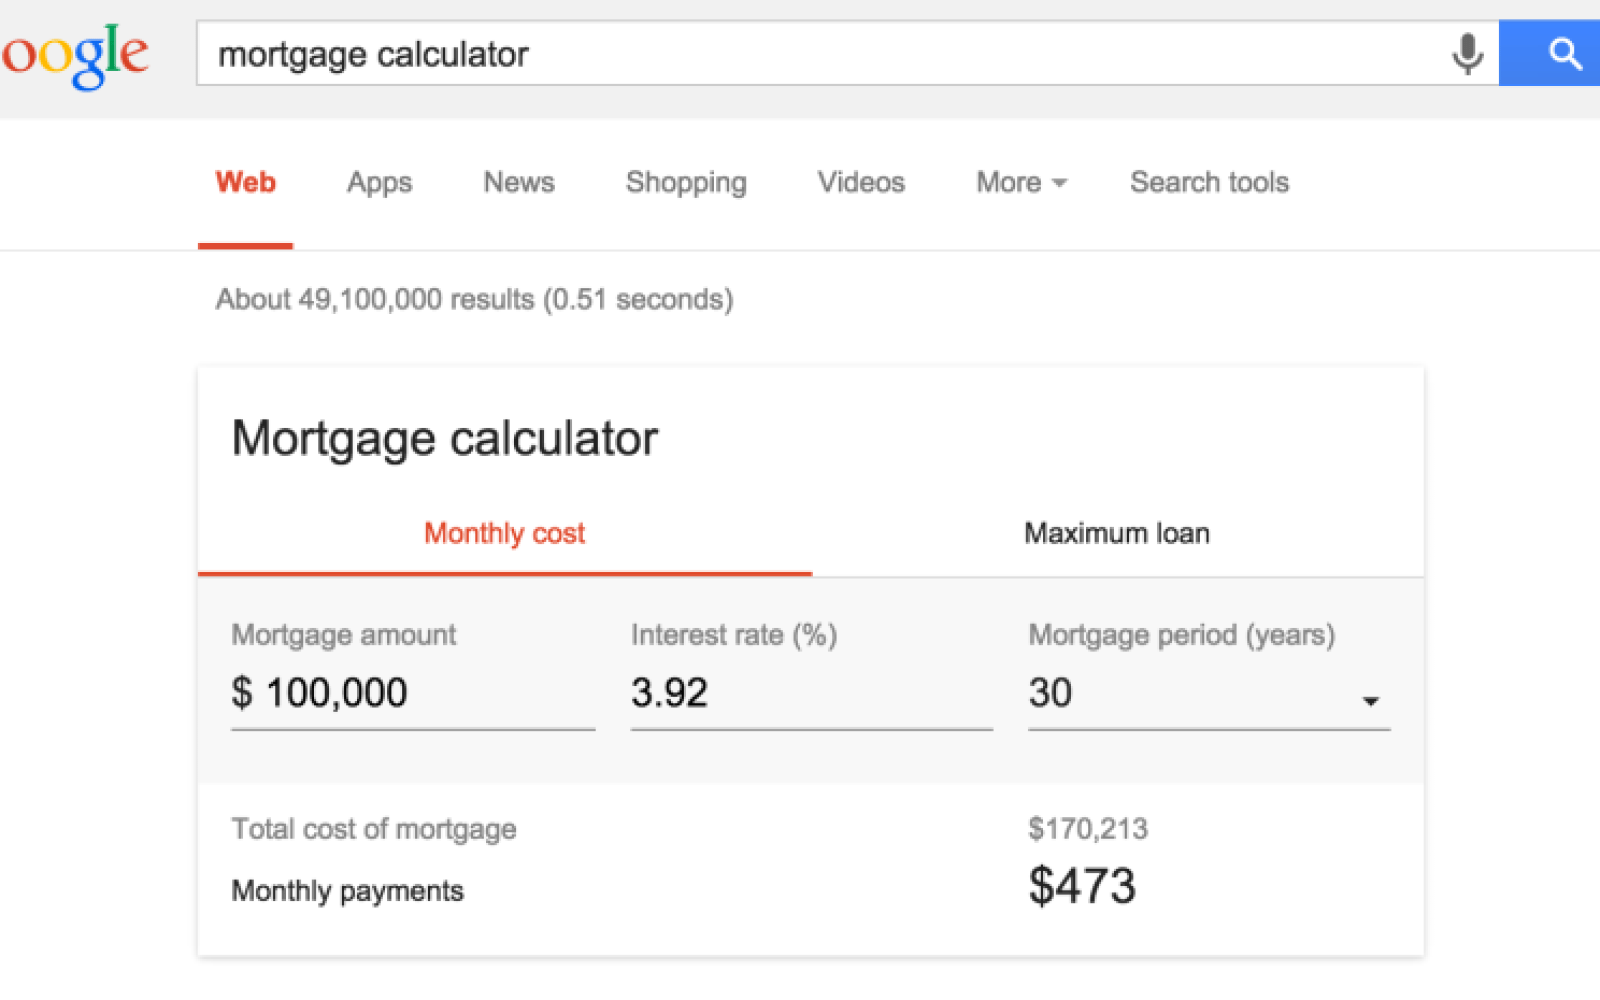 A built-in mortgage calculator is now rolling out to Google Search